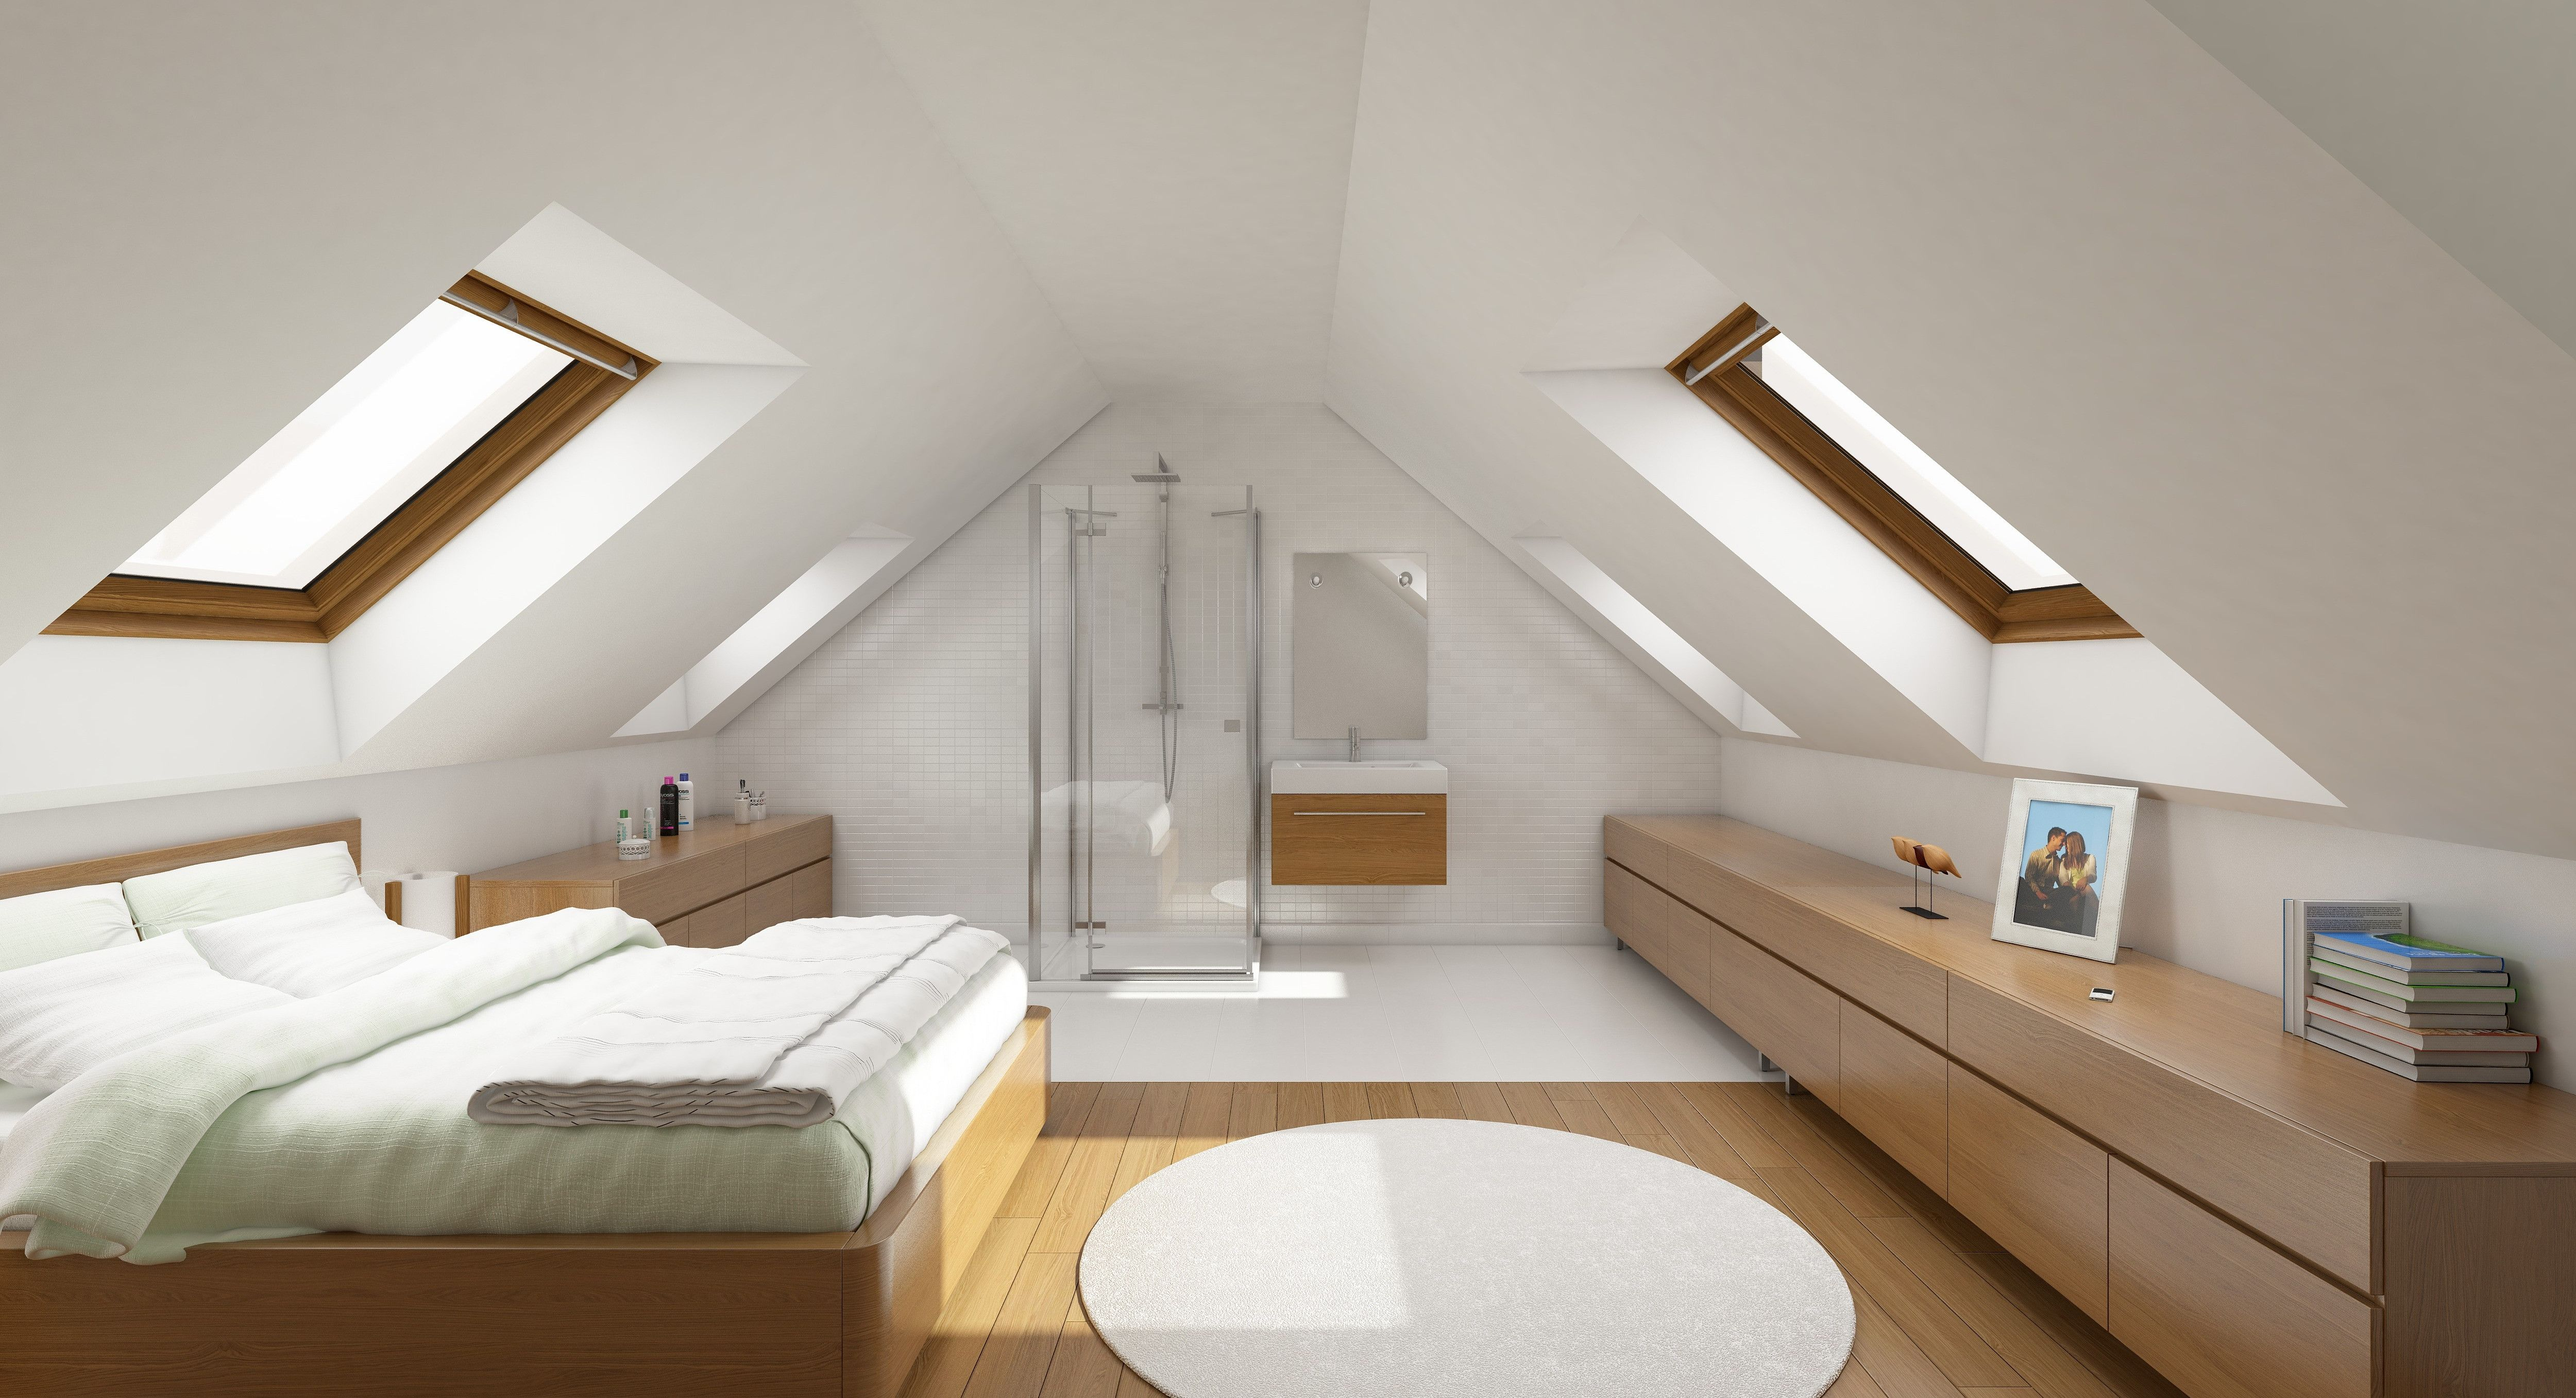 Amenagement Grenier En Chambre Et Salle De Bain Image Result For Suite Parentale Sous Comble Attic Amenagement